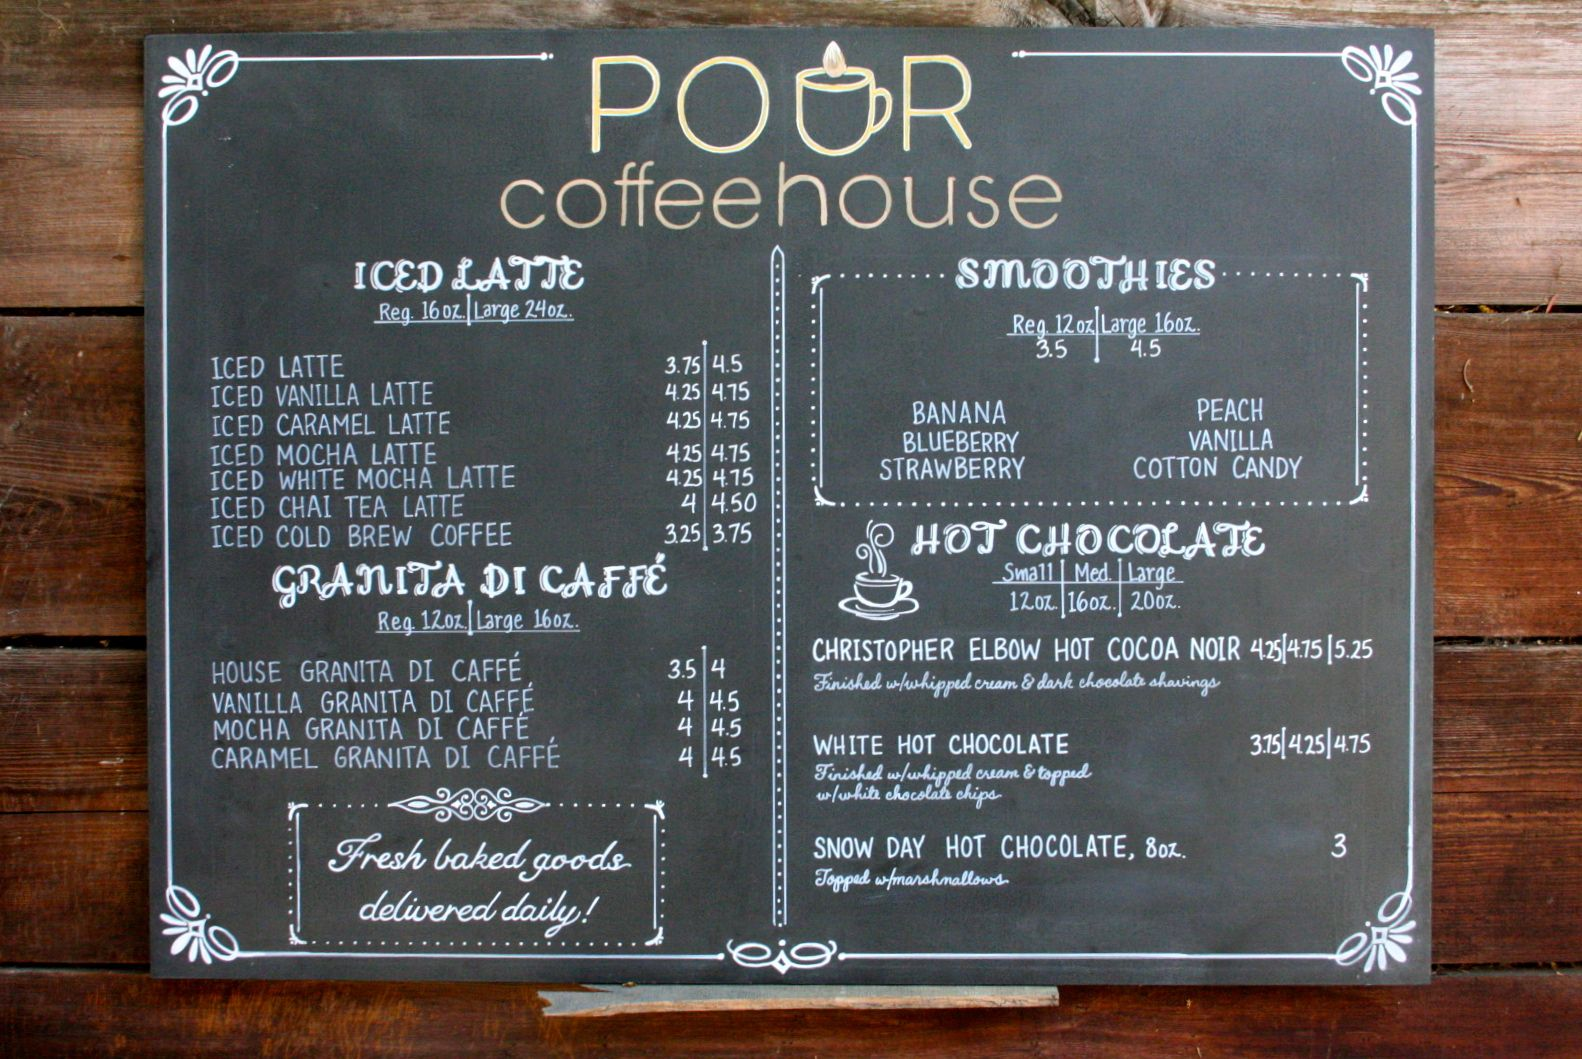 Coffee shop menu for POUR coffeehouse in Kansas. One of a